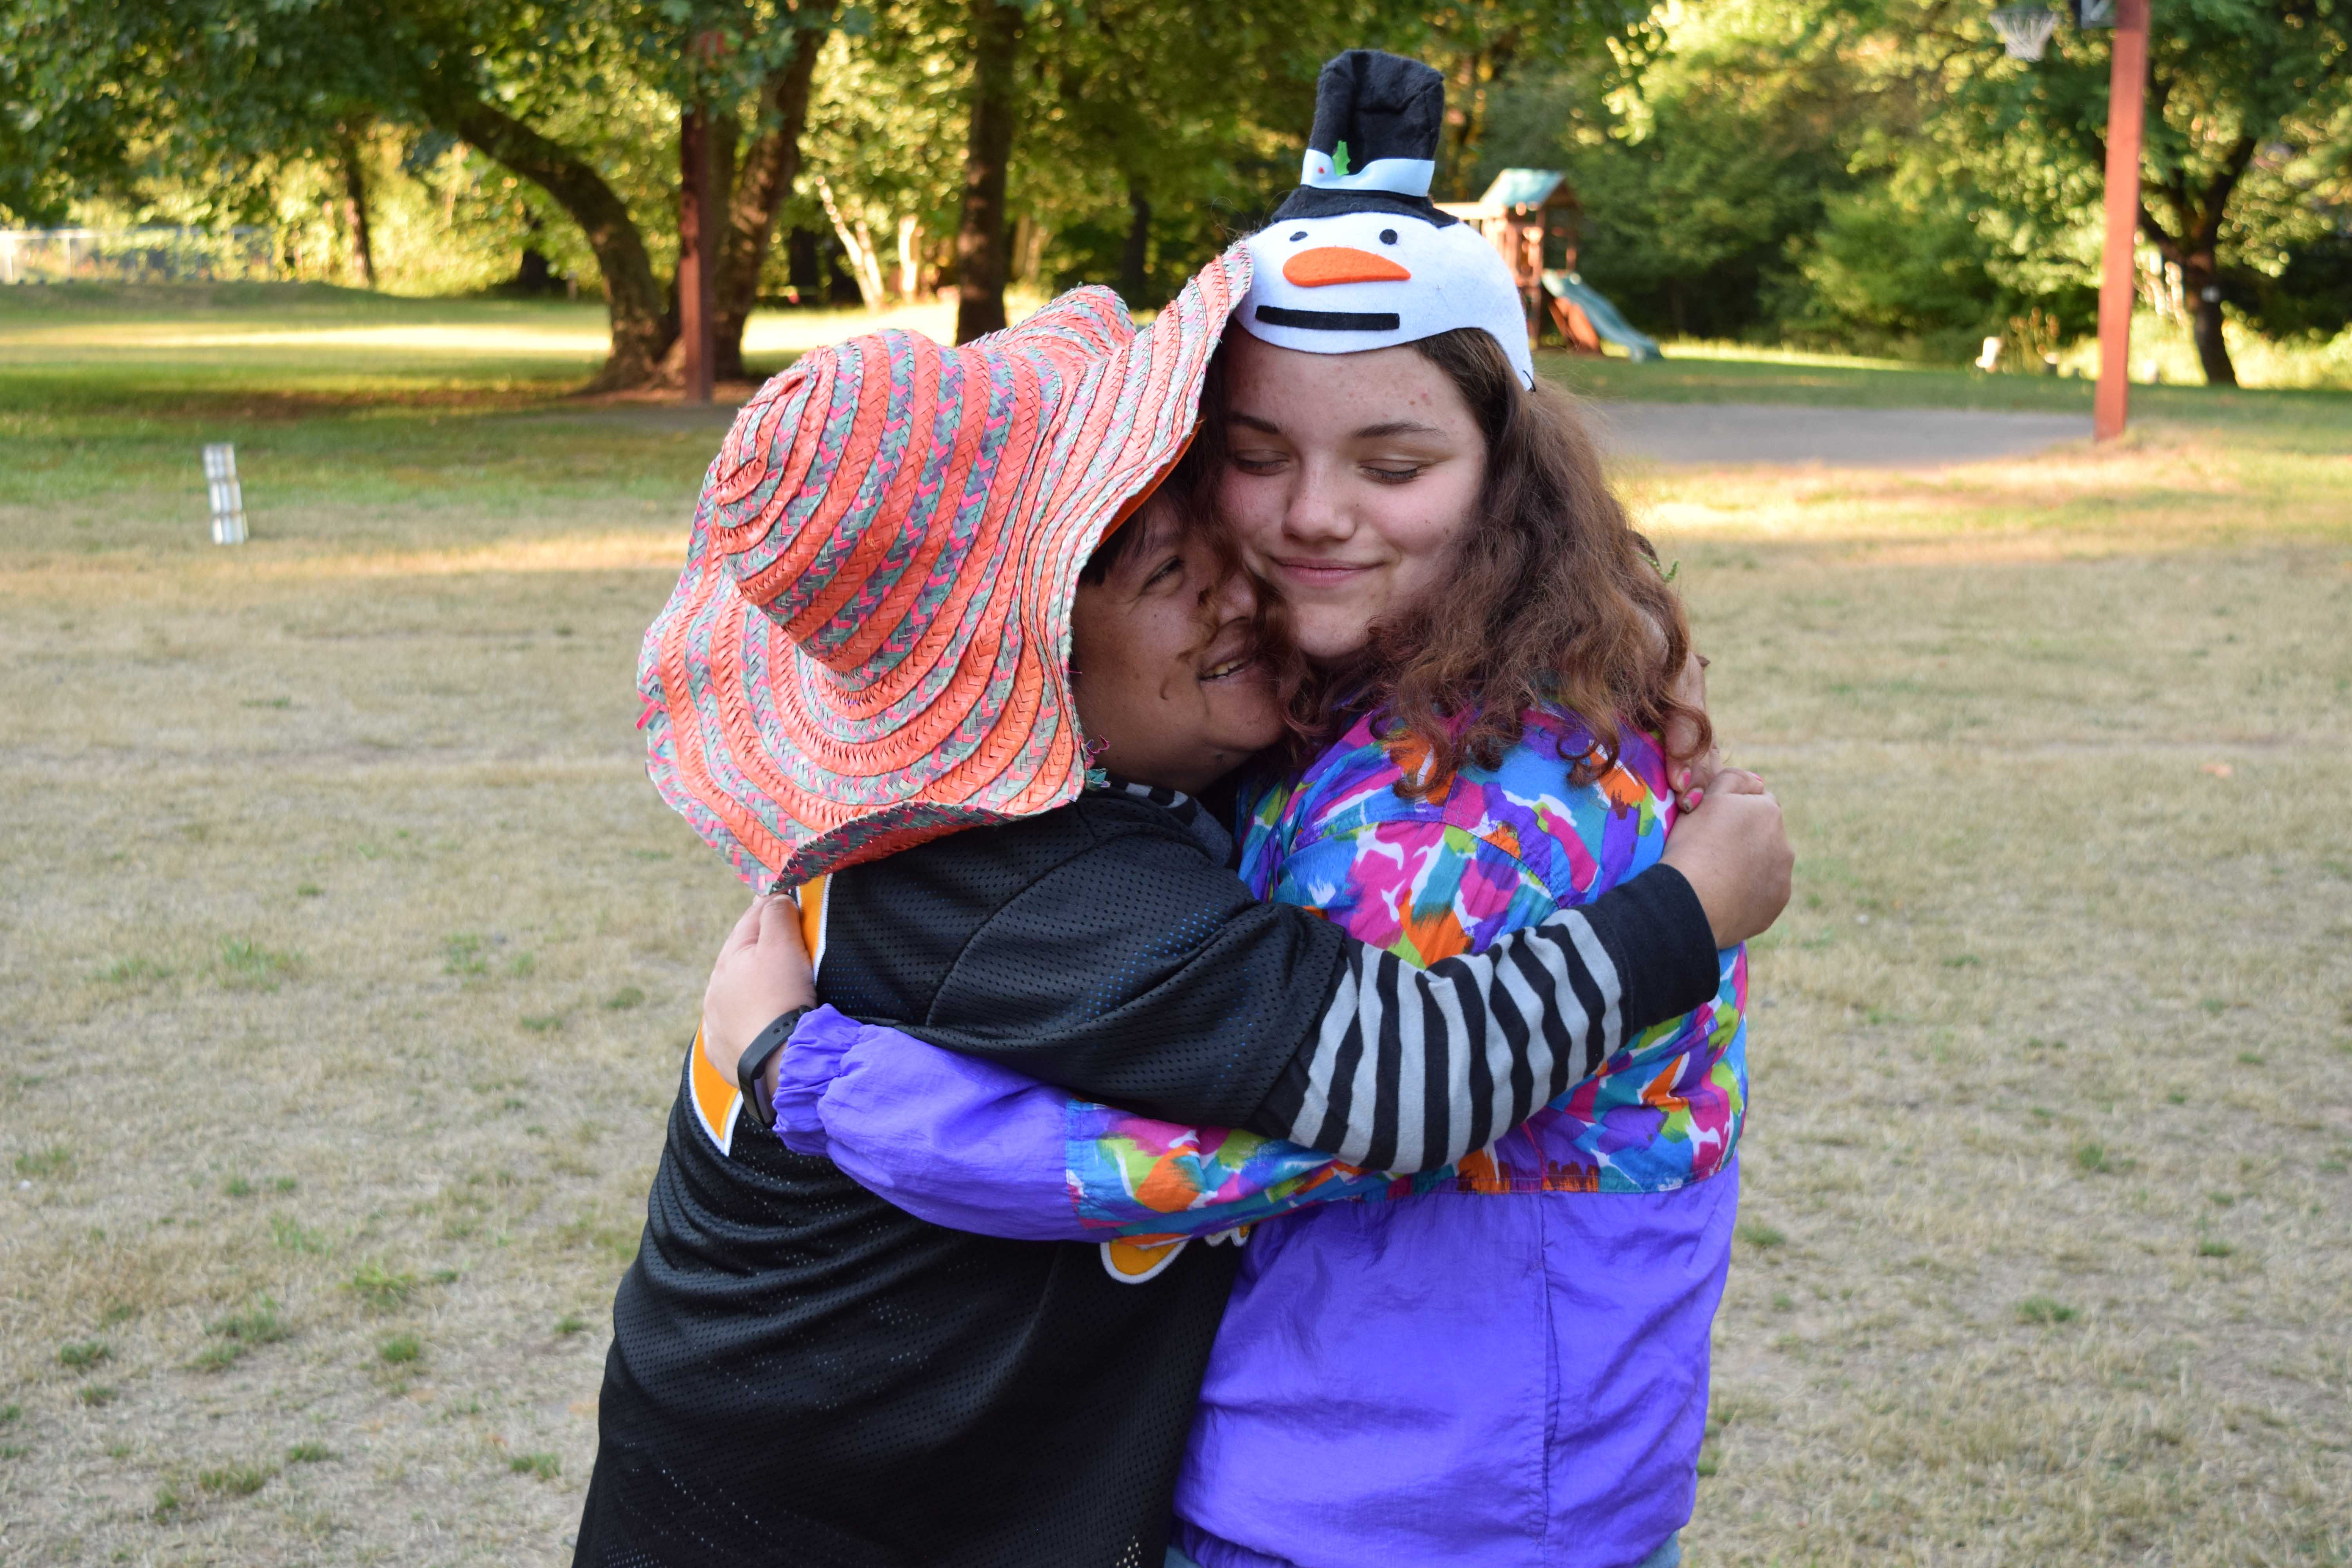 Berta and Becca hug during the costume dance party.